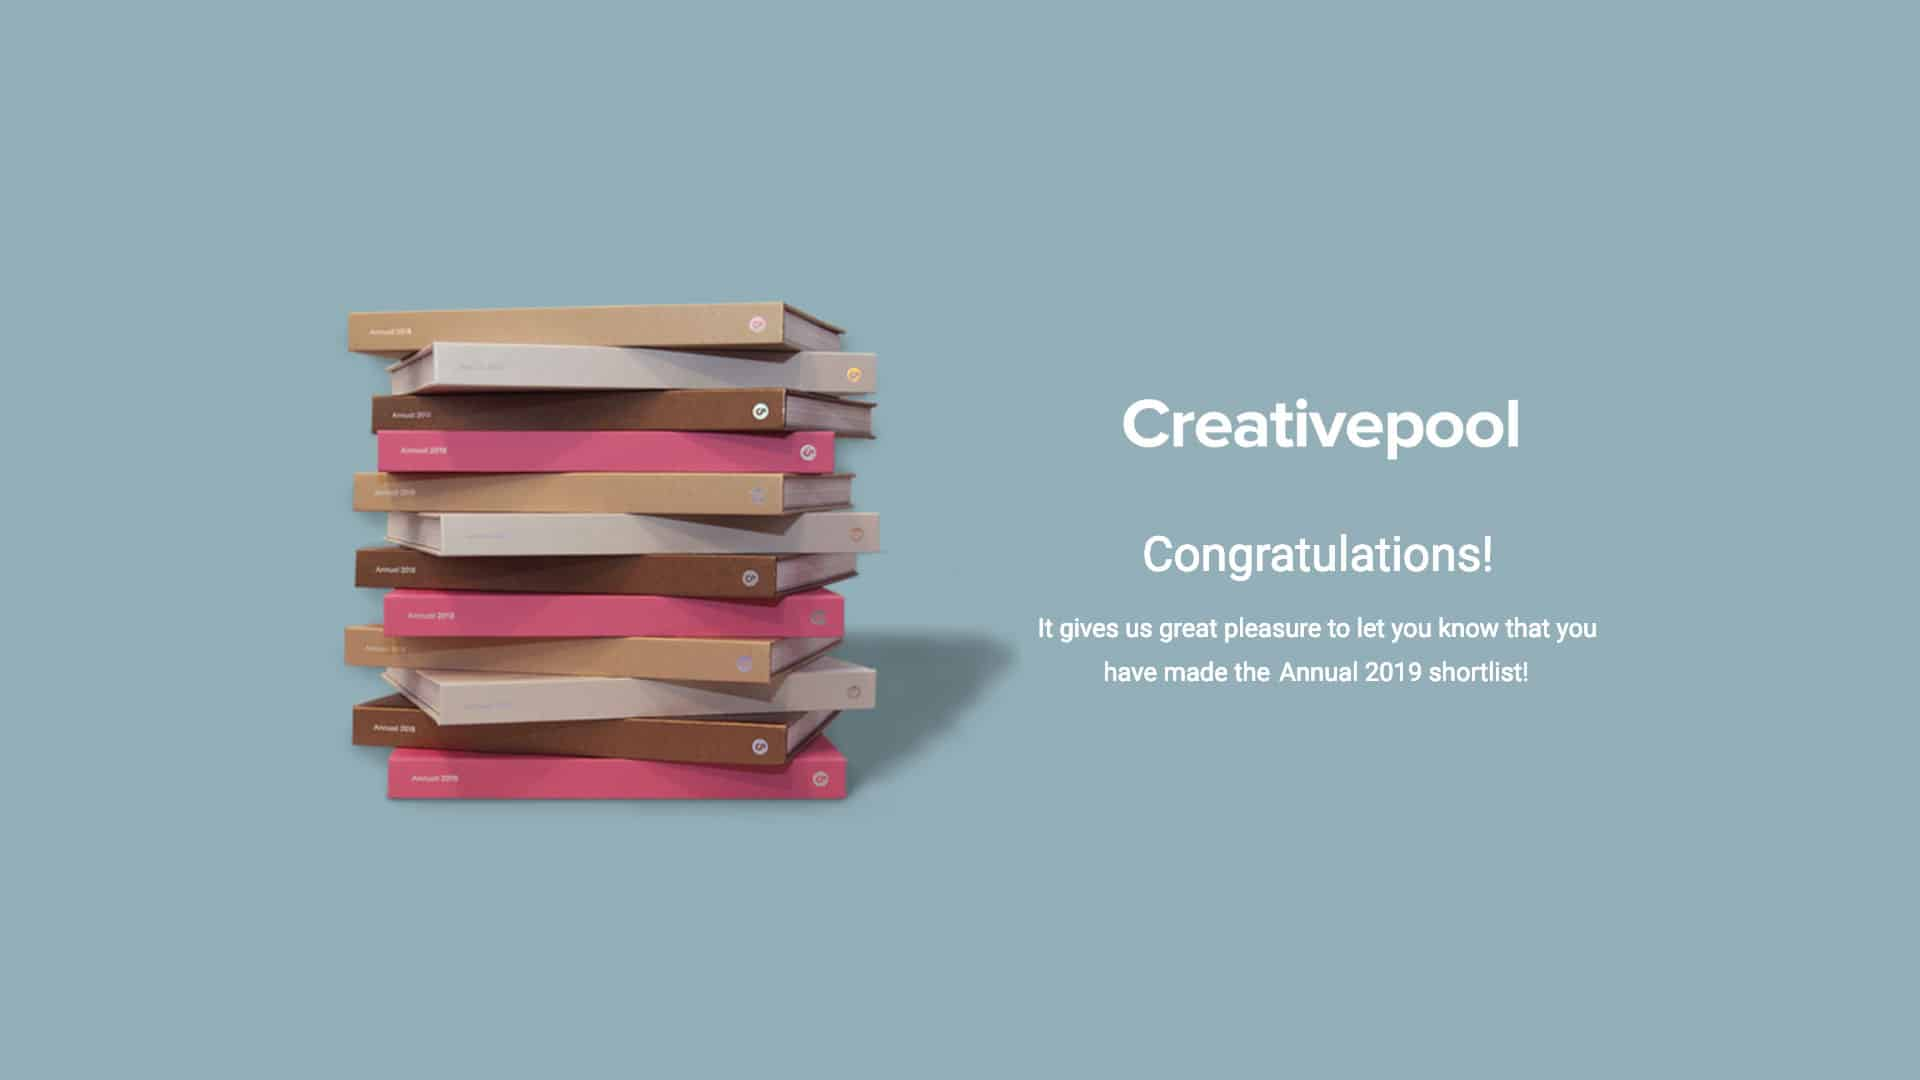 Image showing of the Creativepool nomination